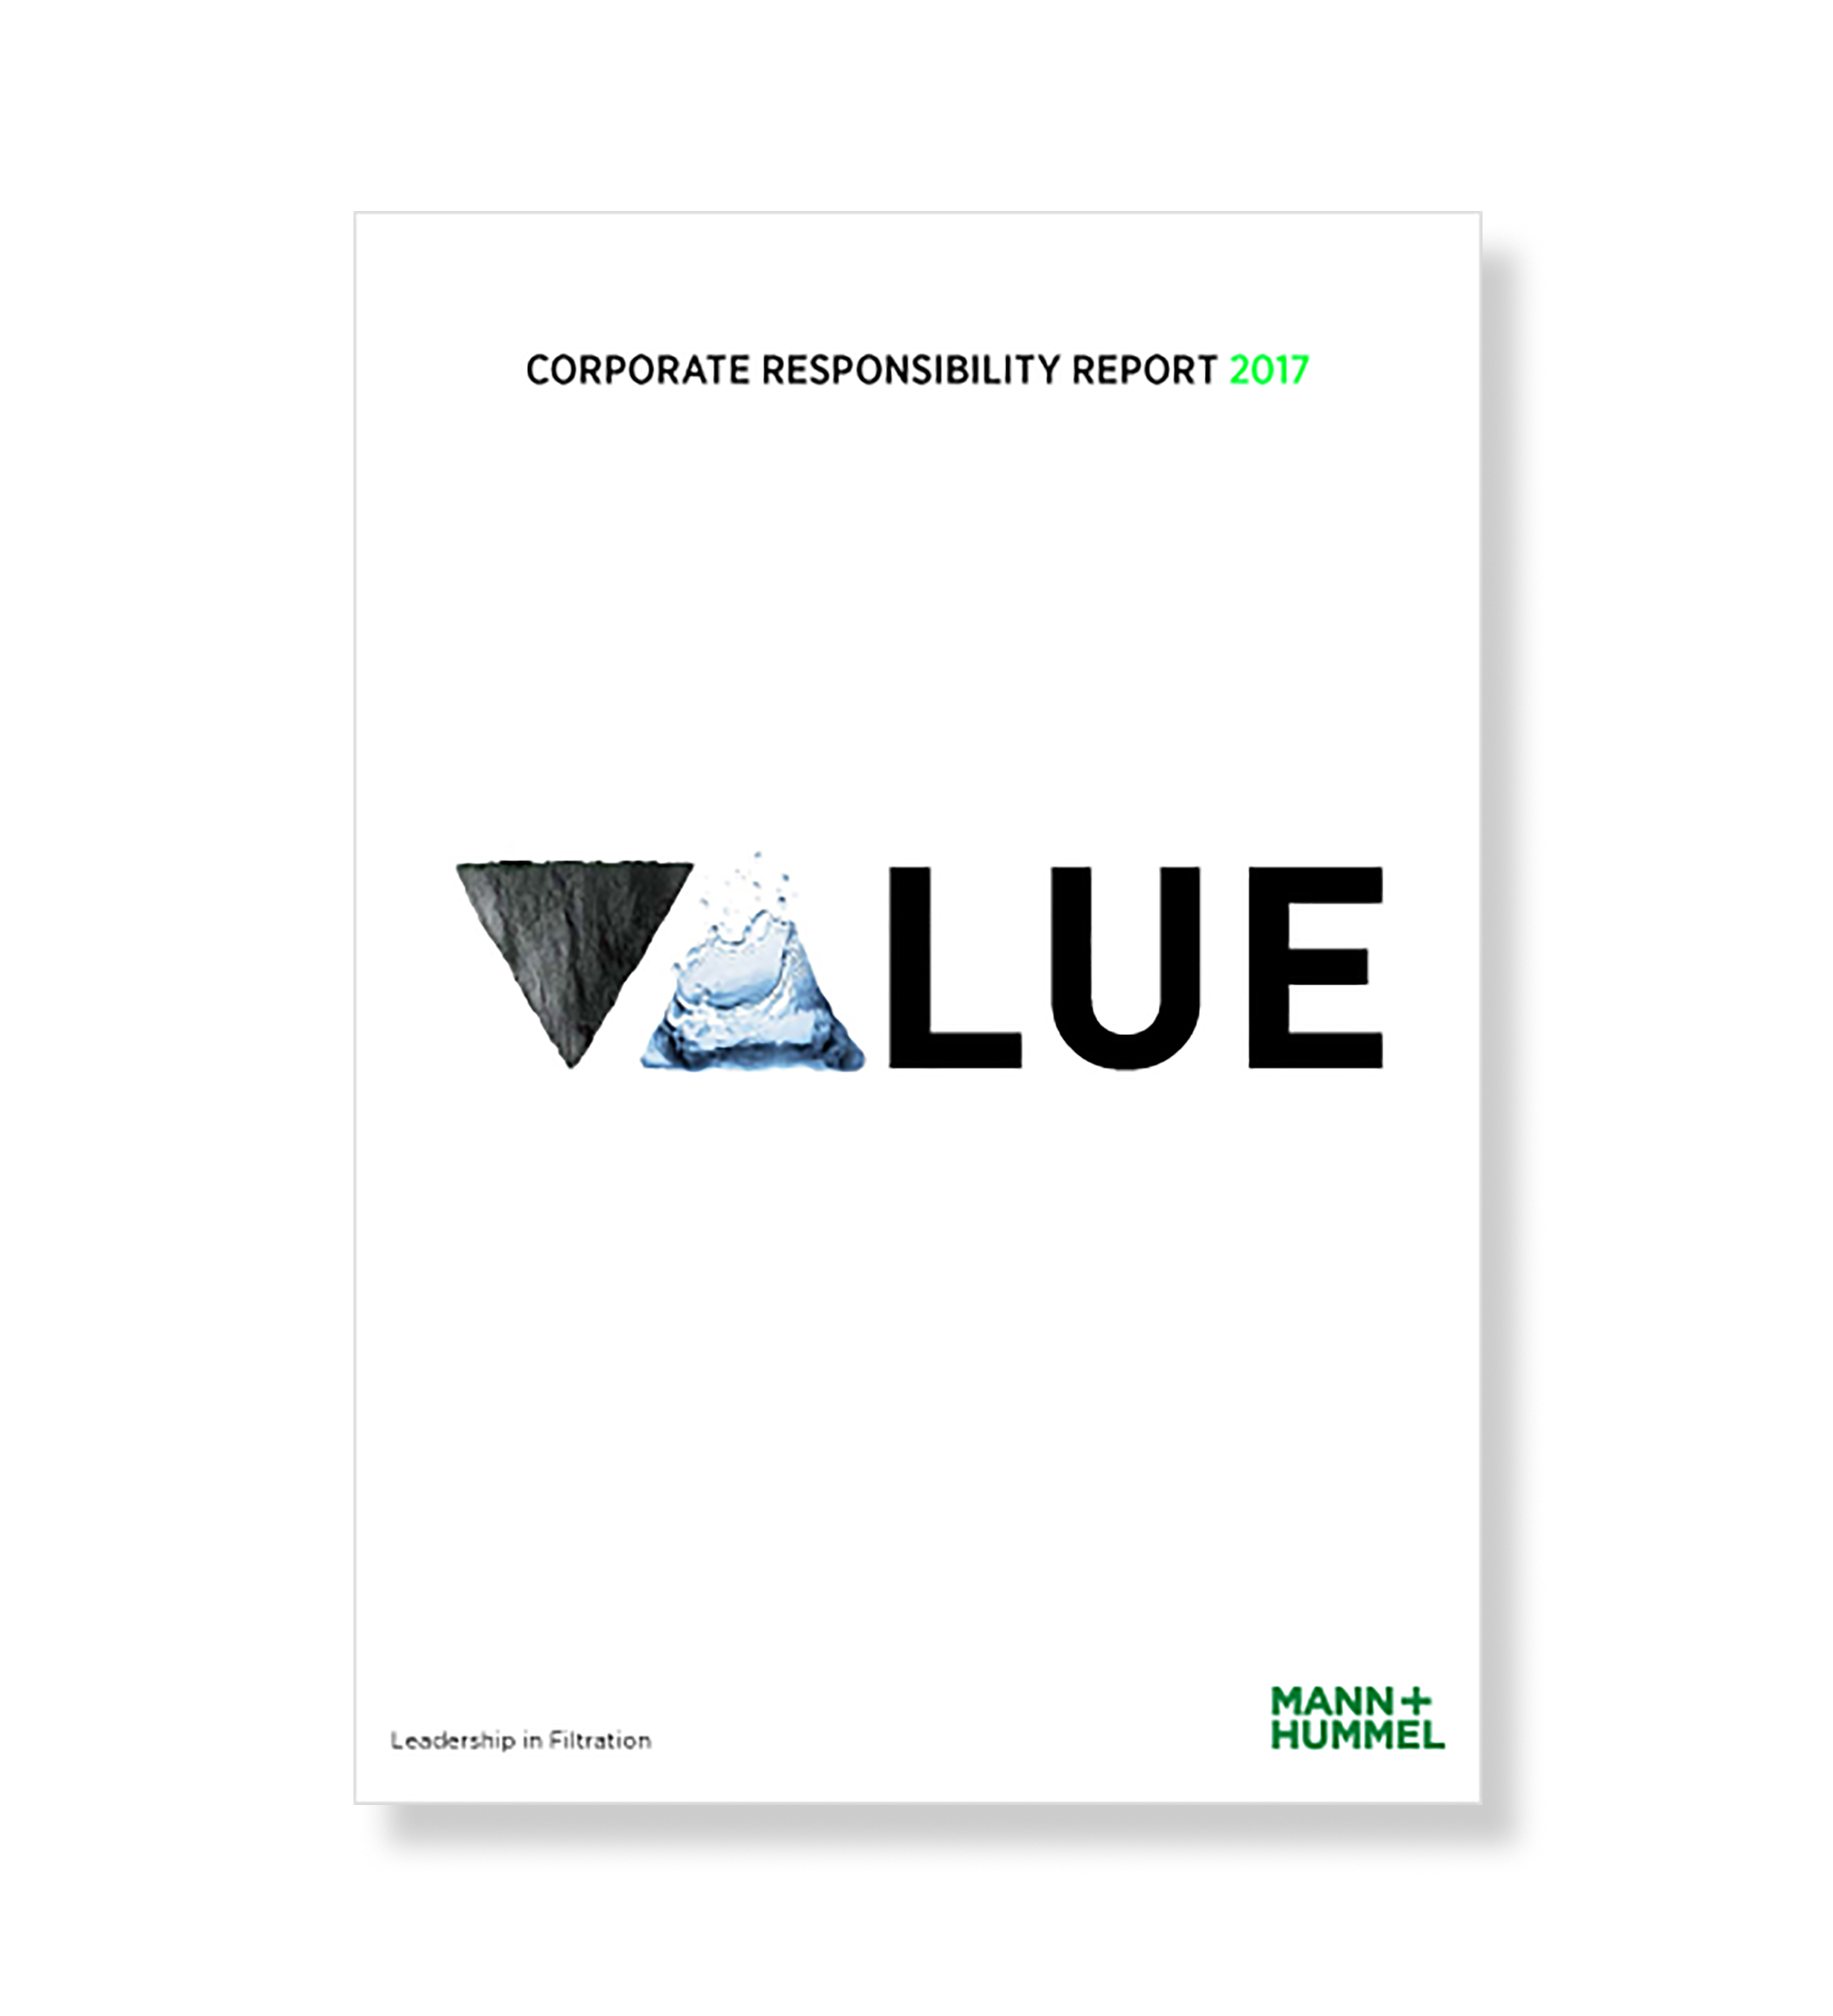 The MANN+HUMMEL Corporate Responsibility Report